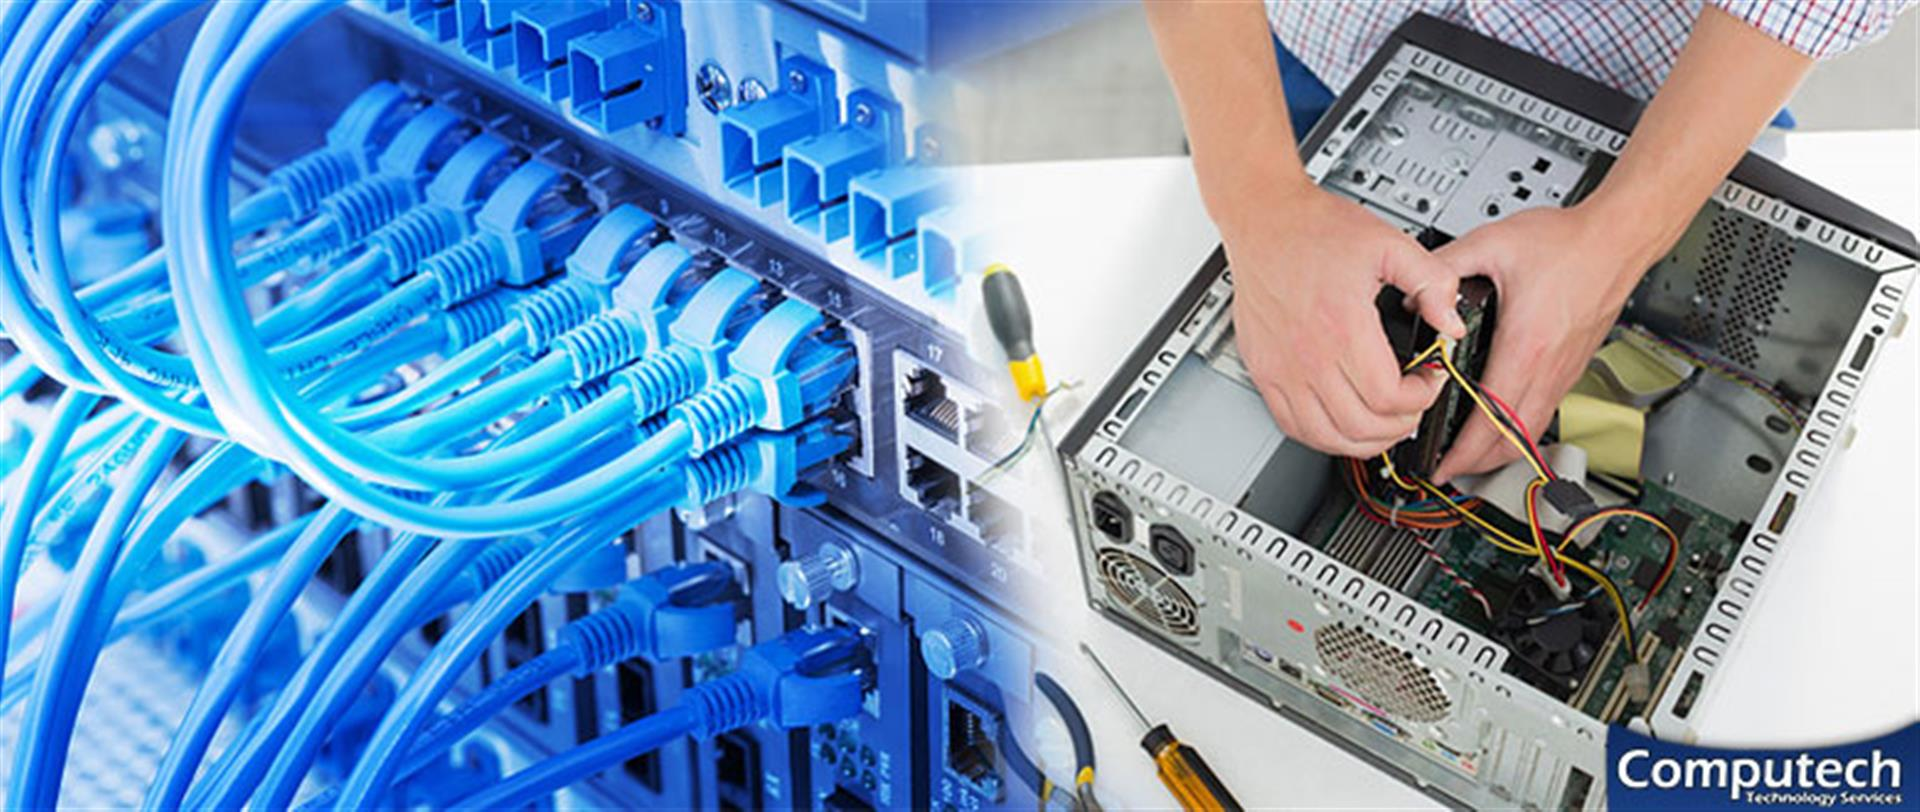 Smiths Station Alabama On Site PC & Printer Repair, Network, Telecom & Data Cabling Services